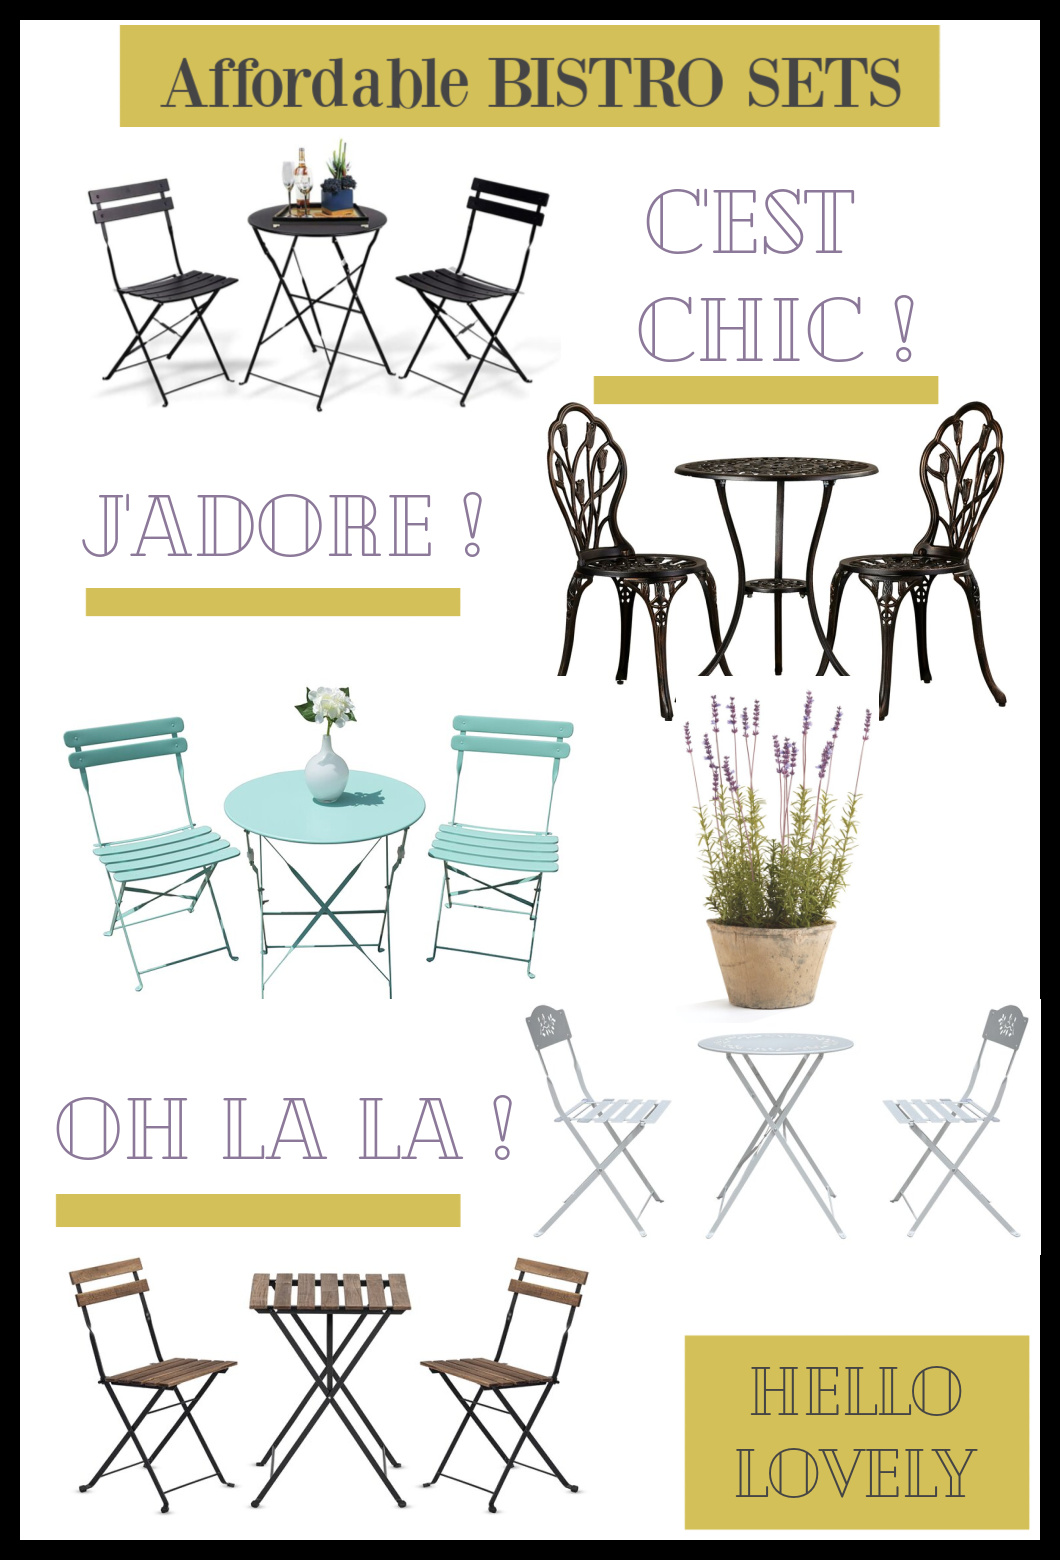 Affordable Bistro Sets on Hello Lovely Studio - come see these gorgeous possibilities for a small patio or deck!